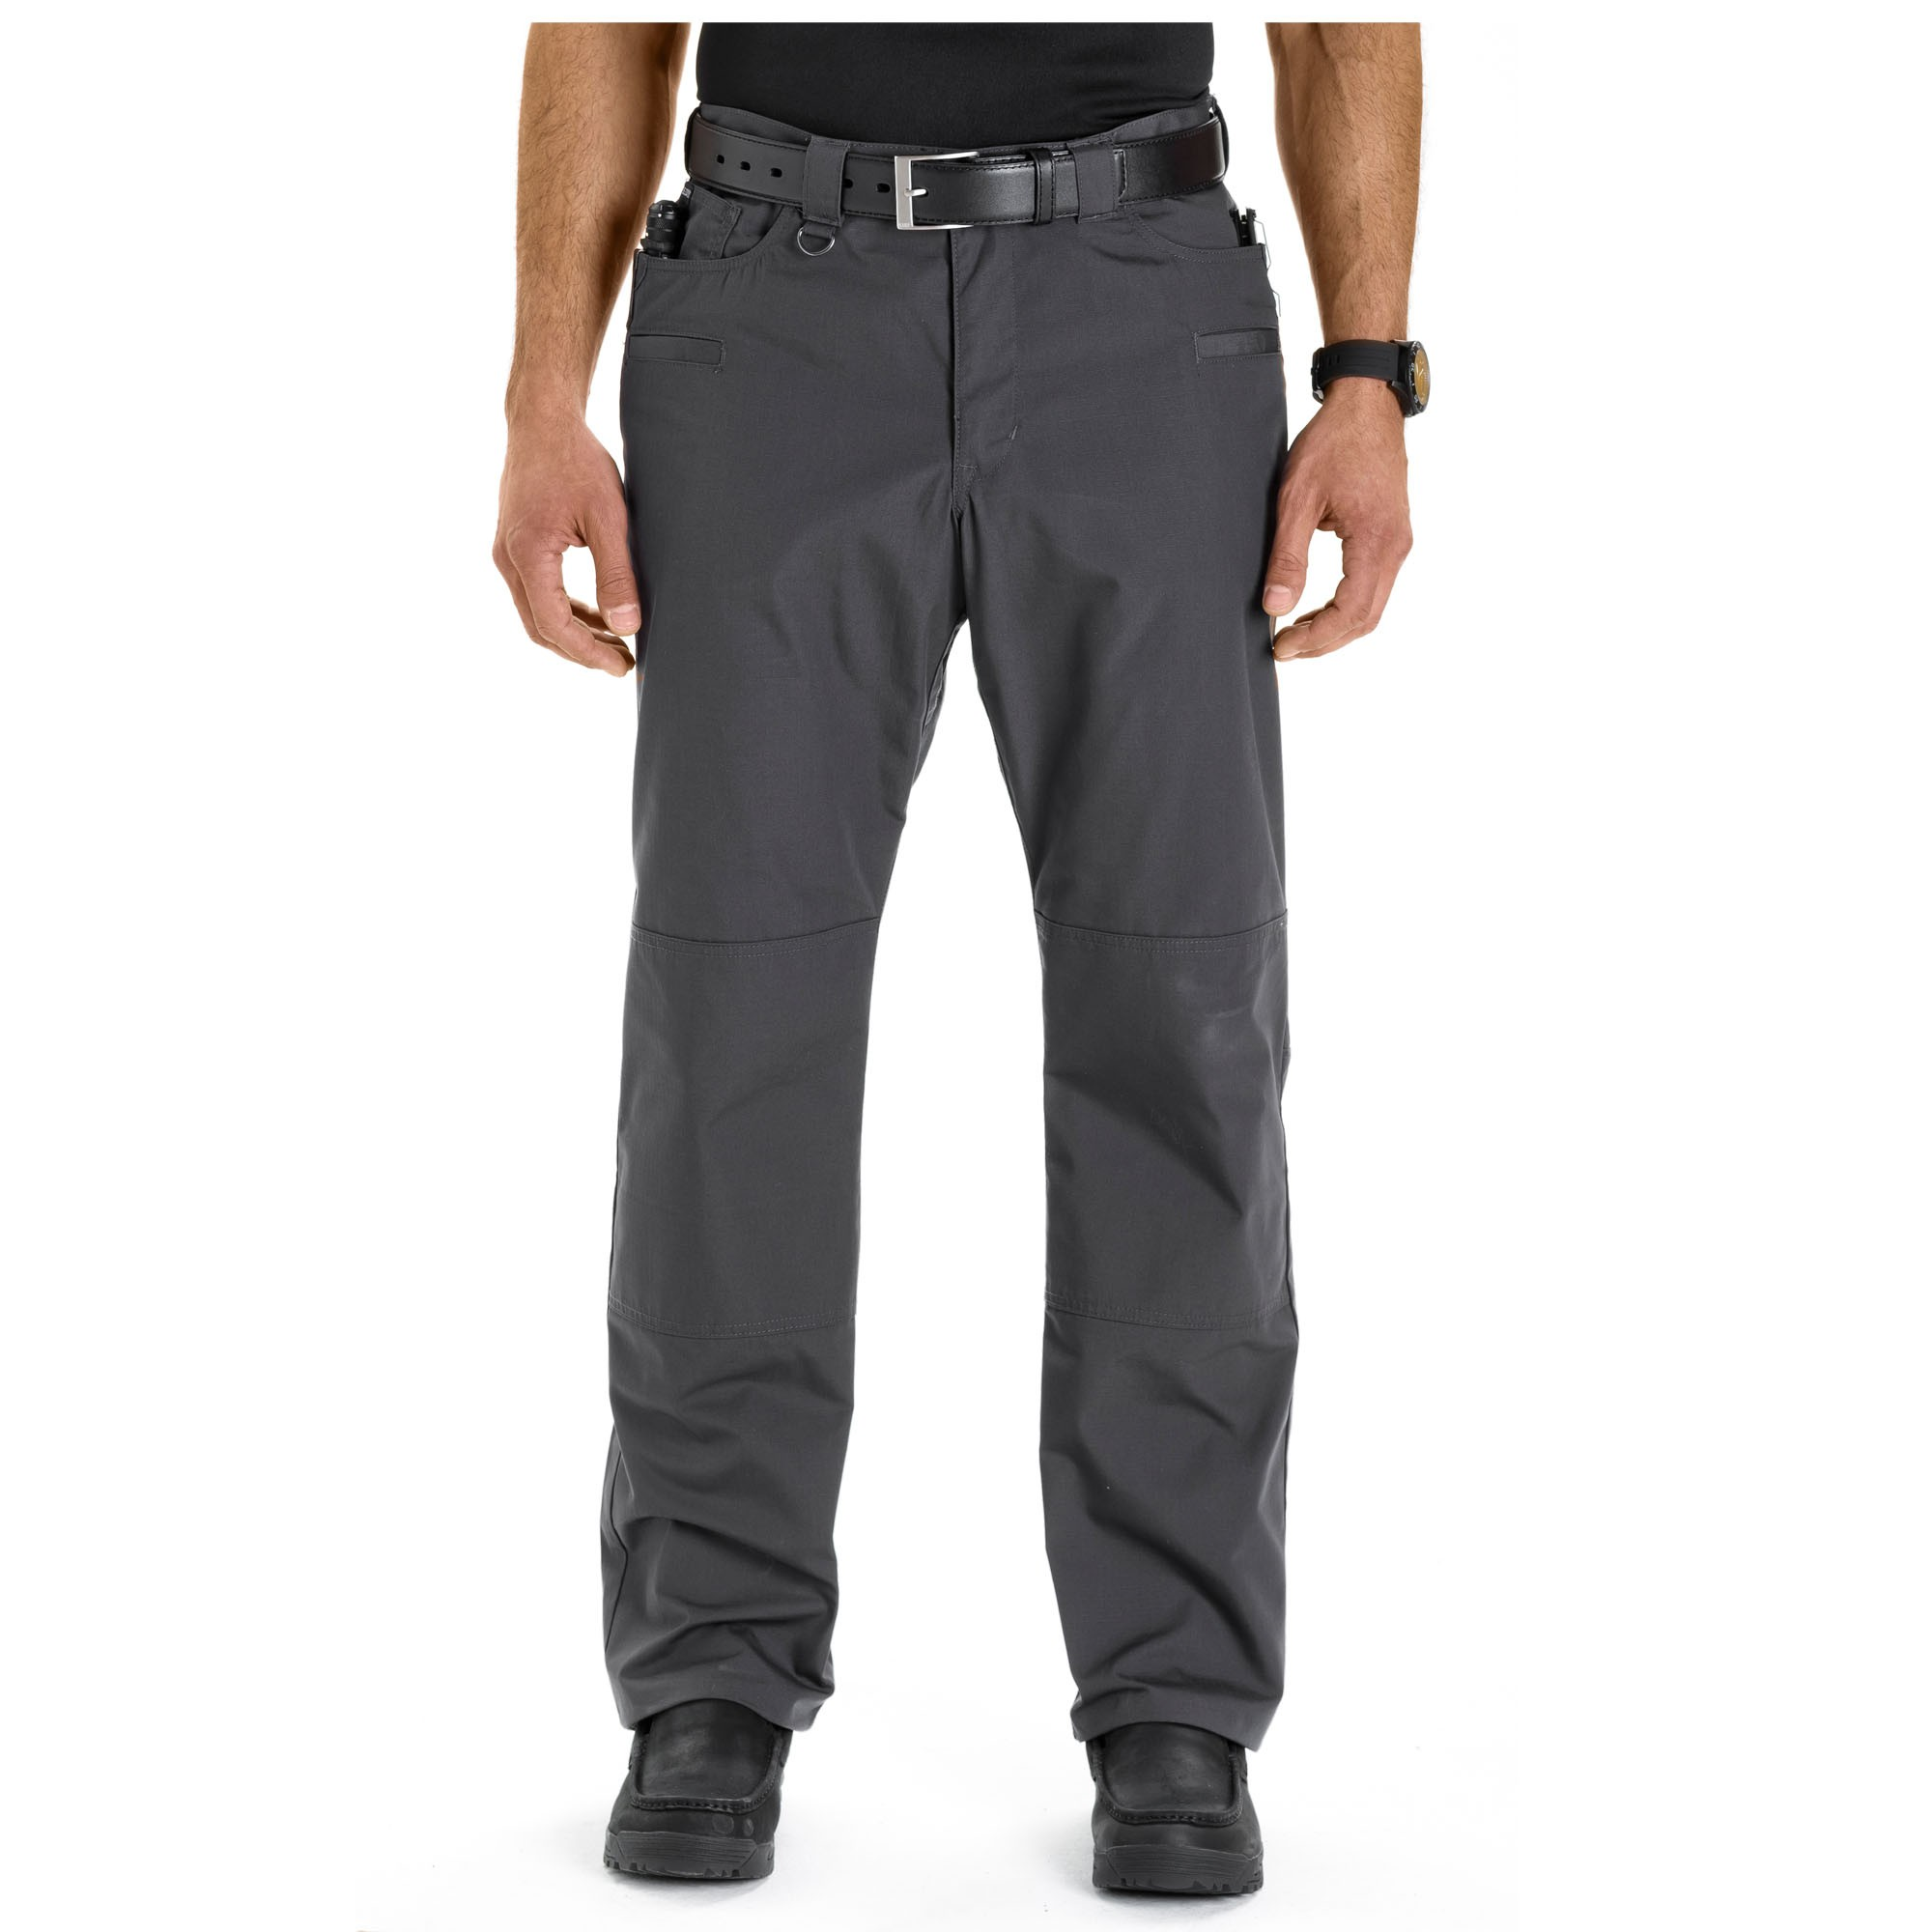 מכנס טקטי 5.11 TACLITE® JEAN-CUT PANTS CHARCOAL